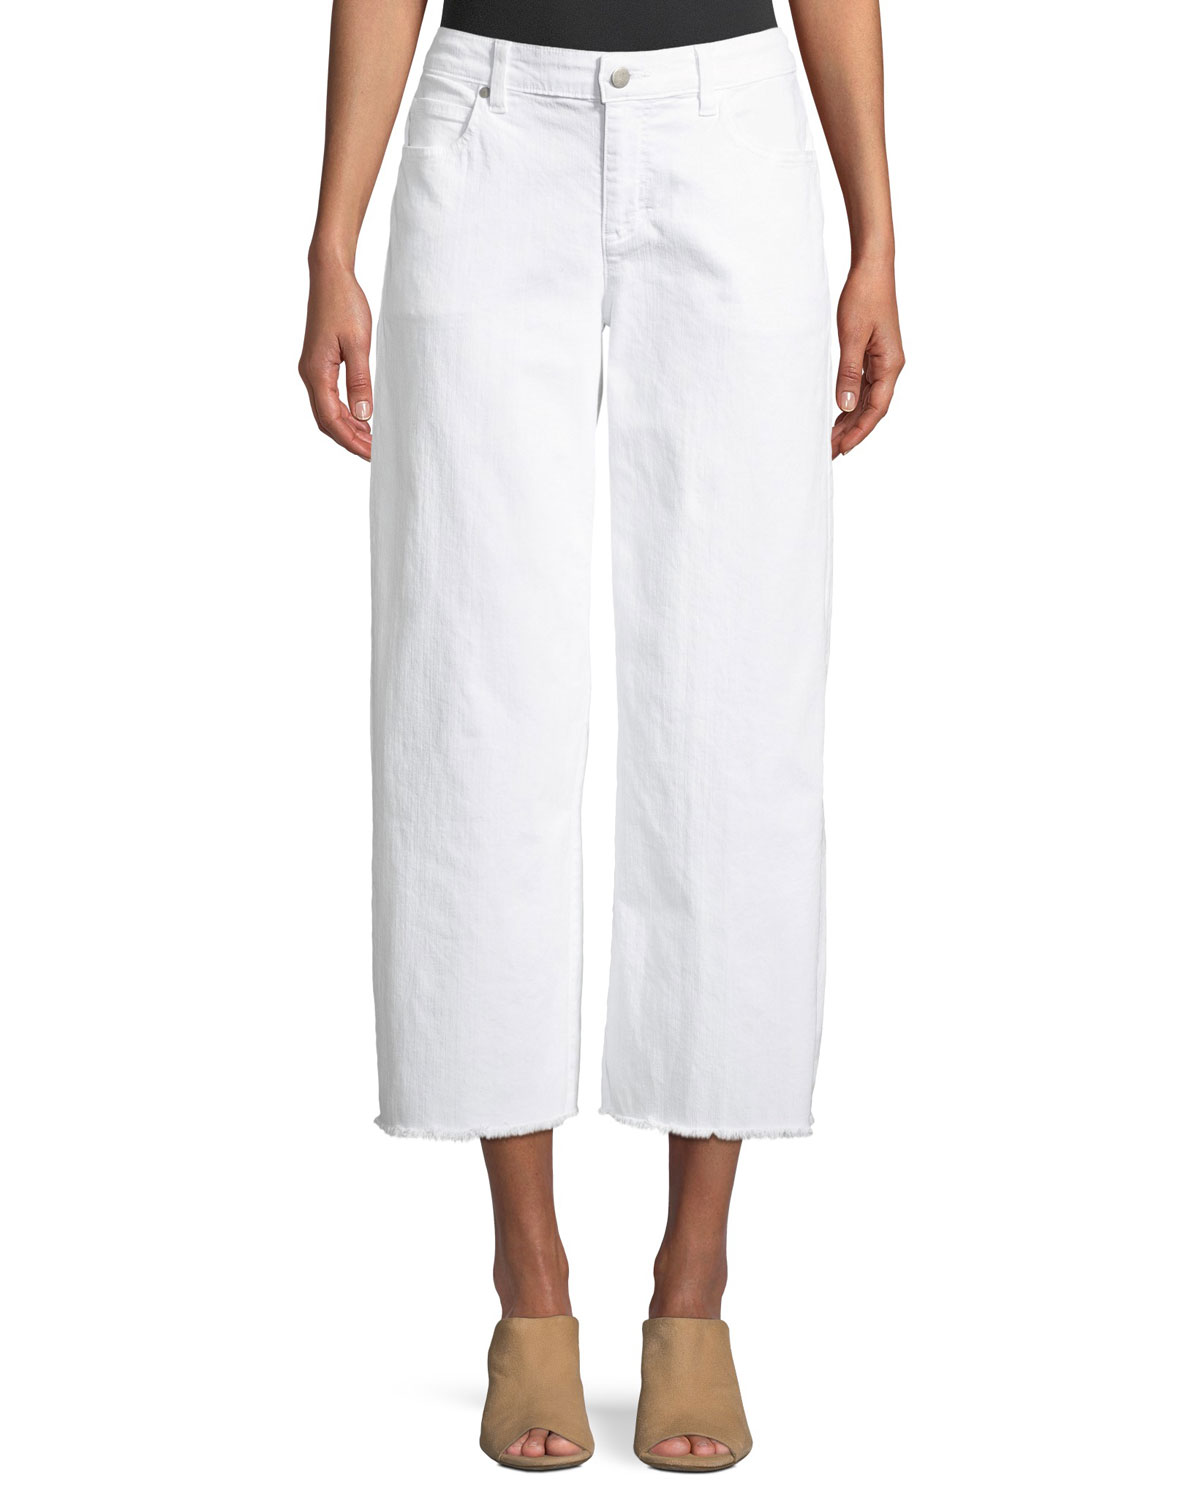 Organic Cotton Garment-Dyed Denim Wide-Leg Ankle Jeans with Raw Edges